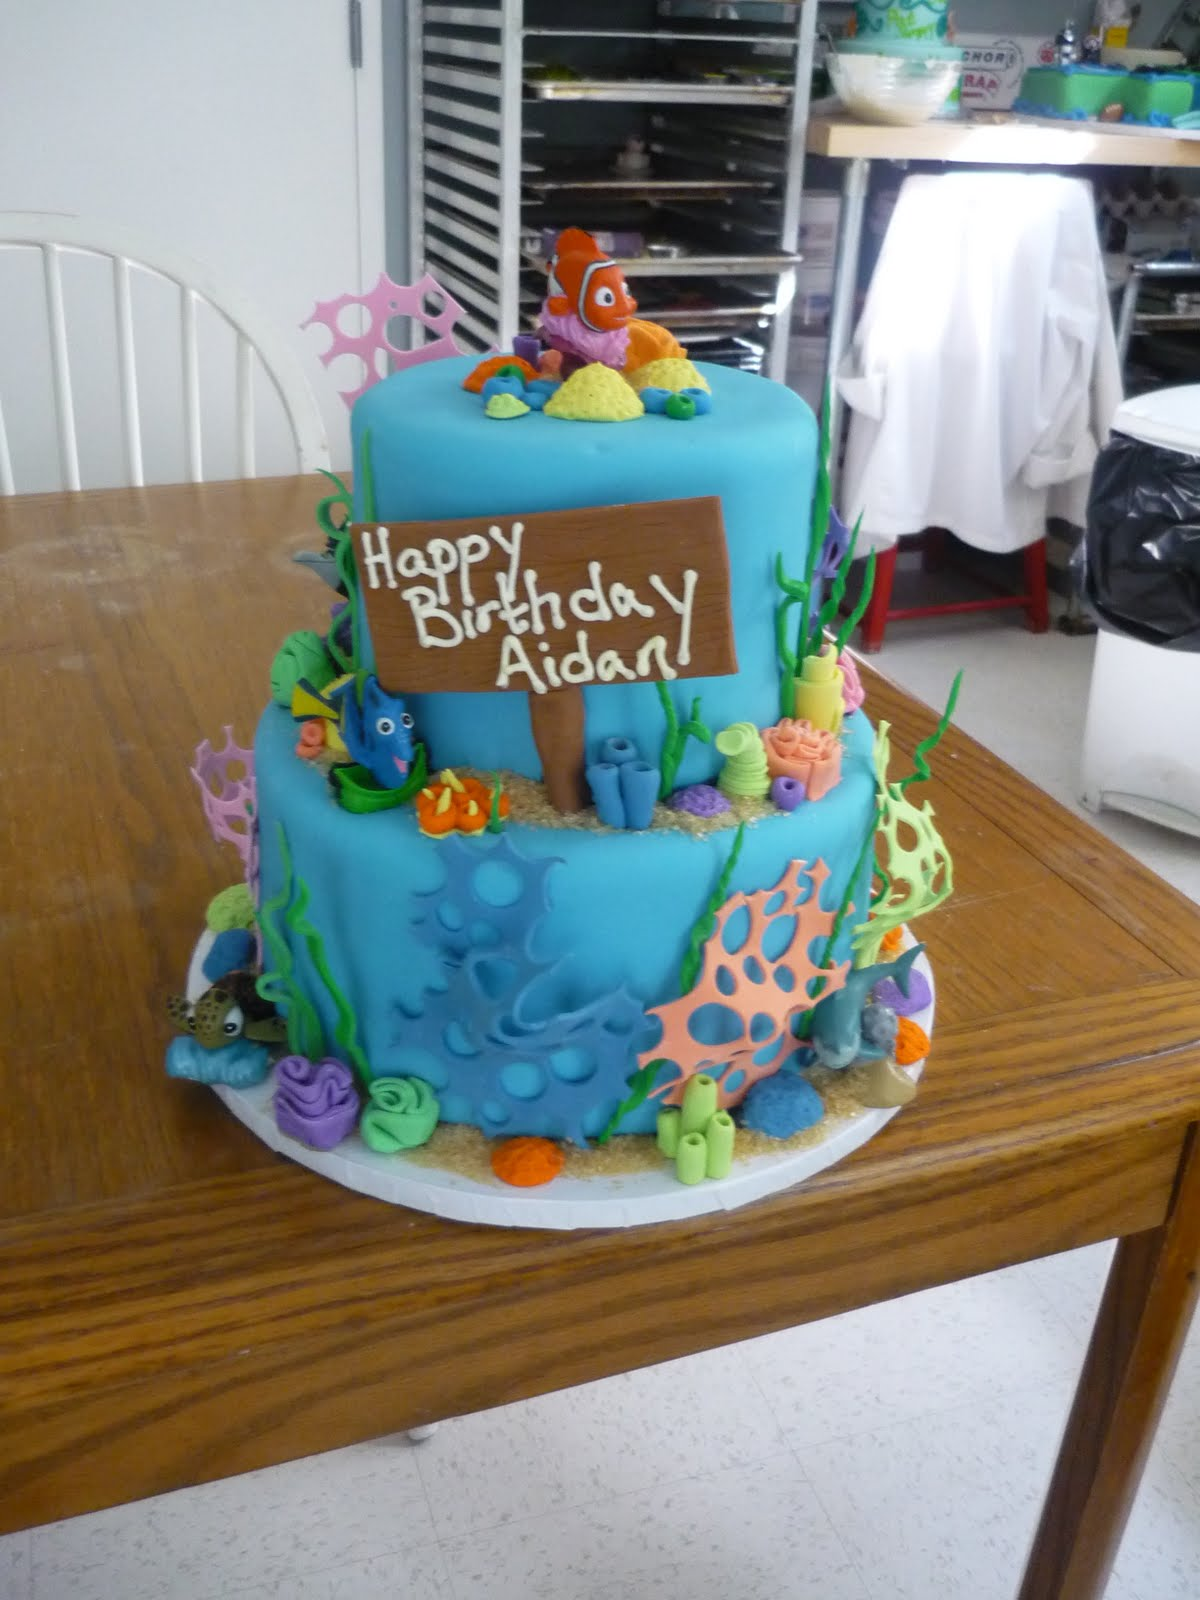 Artisan Bake Shop Finding Nemo Birthday Cake